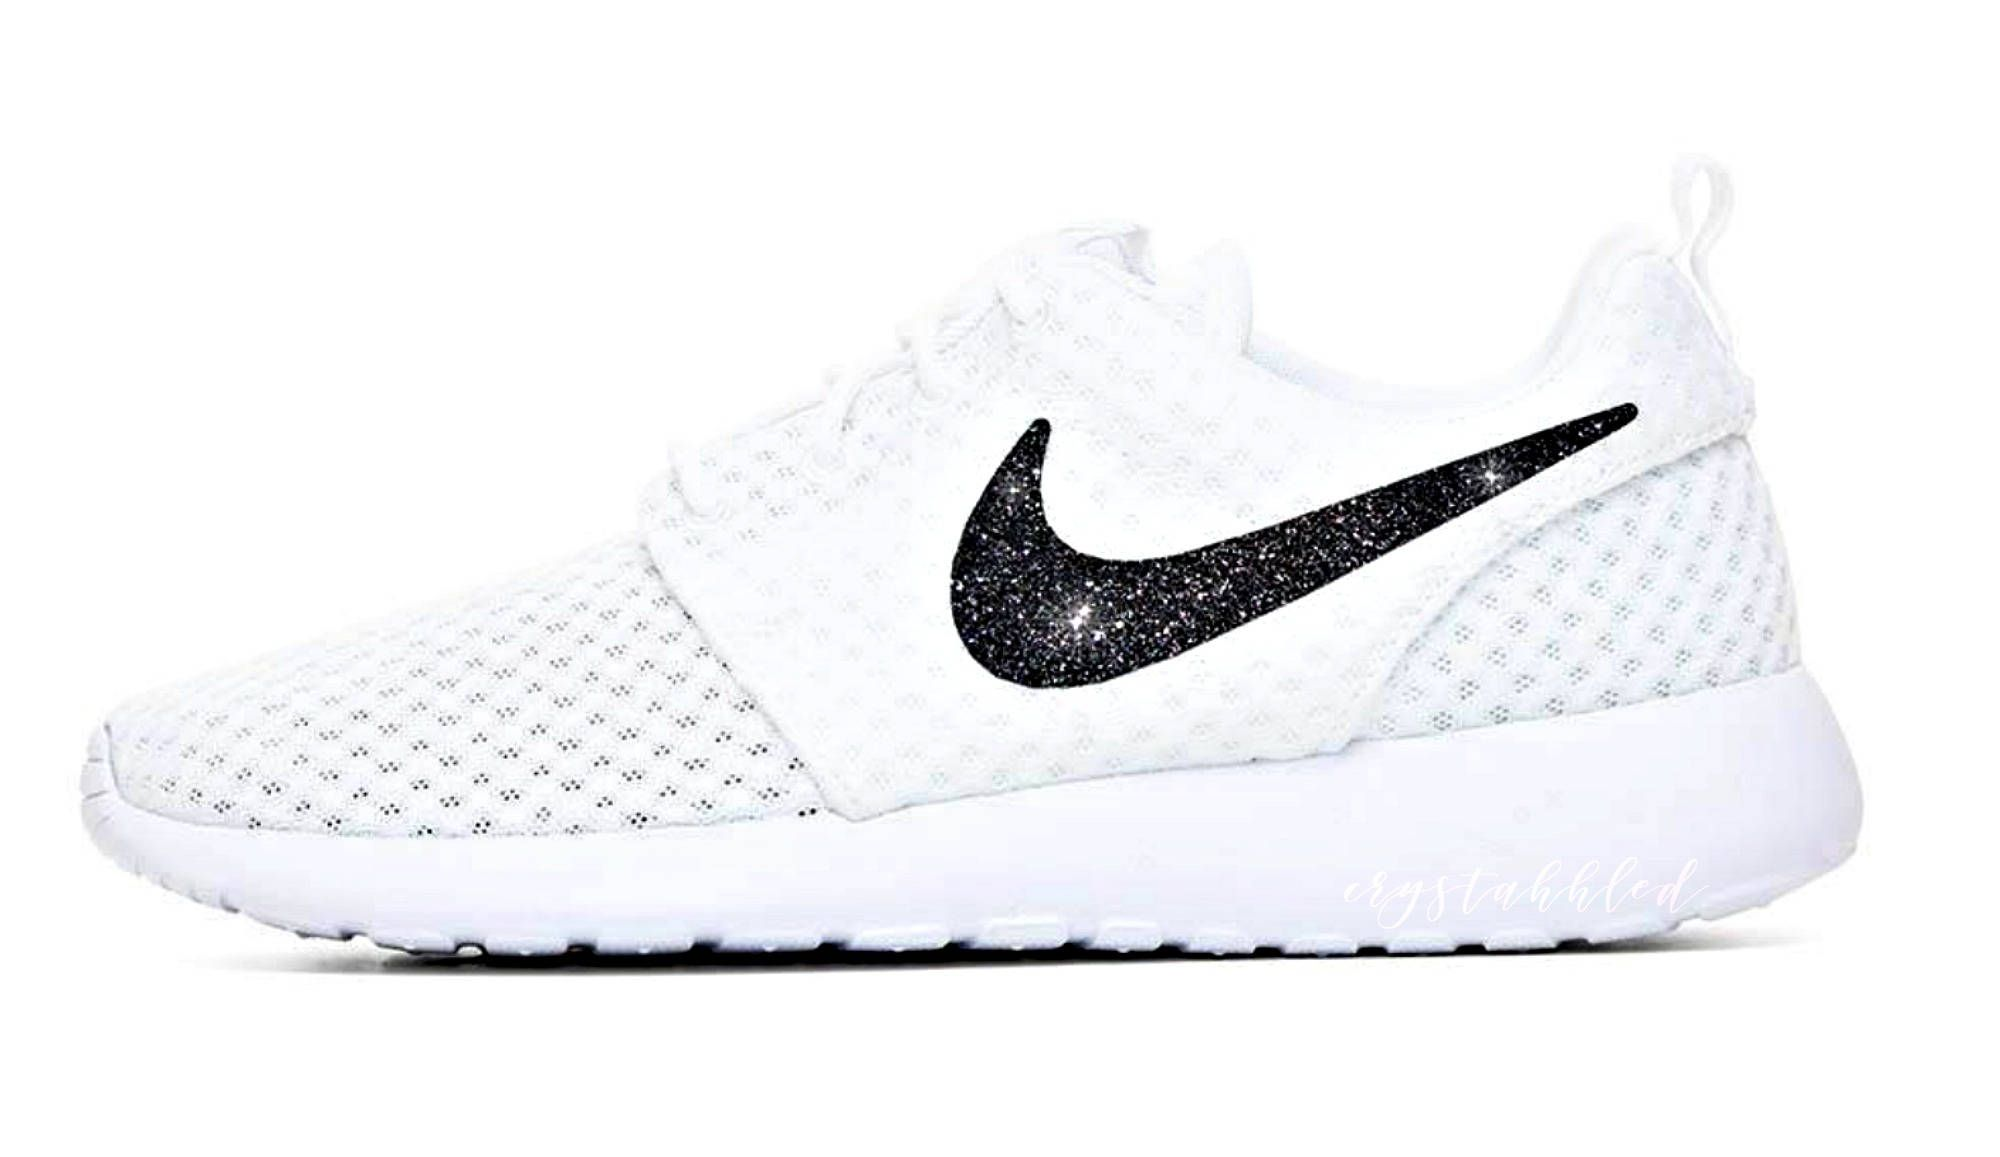 Women s Nike Glitter Roshe One in Pure White w  Galaxy Black Glitter Swoosh  - Custom Nike Bling - Sparkle Shoes - Bling Sneakers by CrystahhledDesigns  on ... fe49d6307e